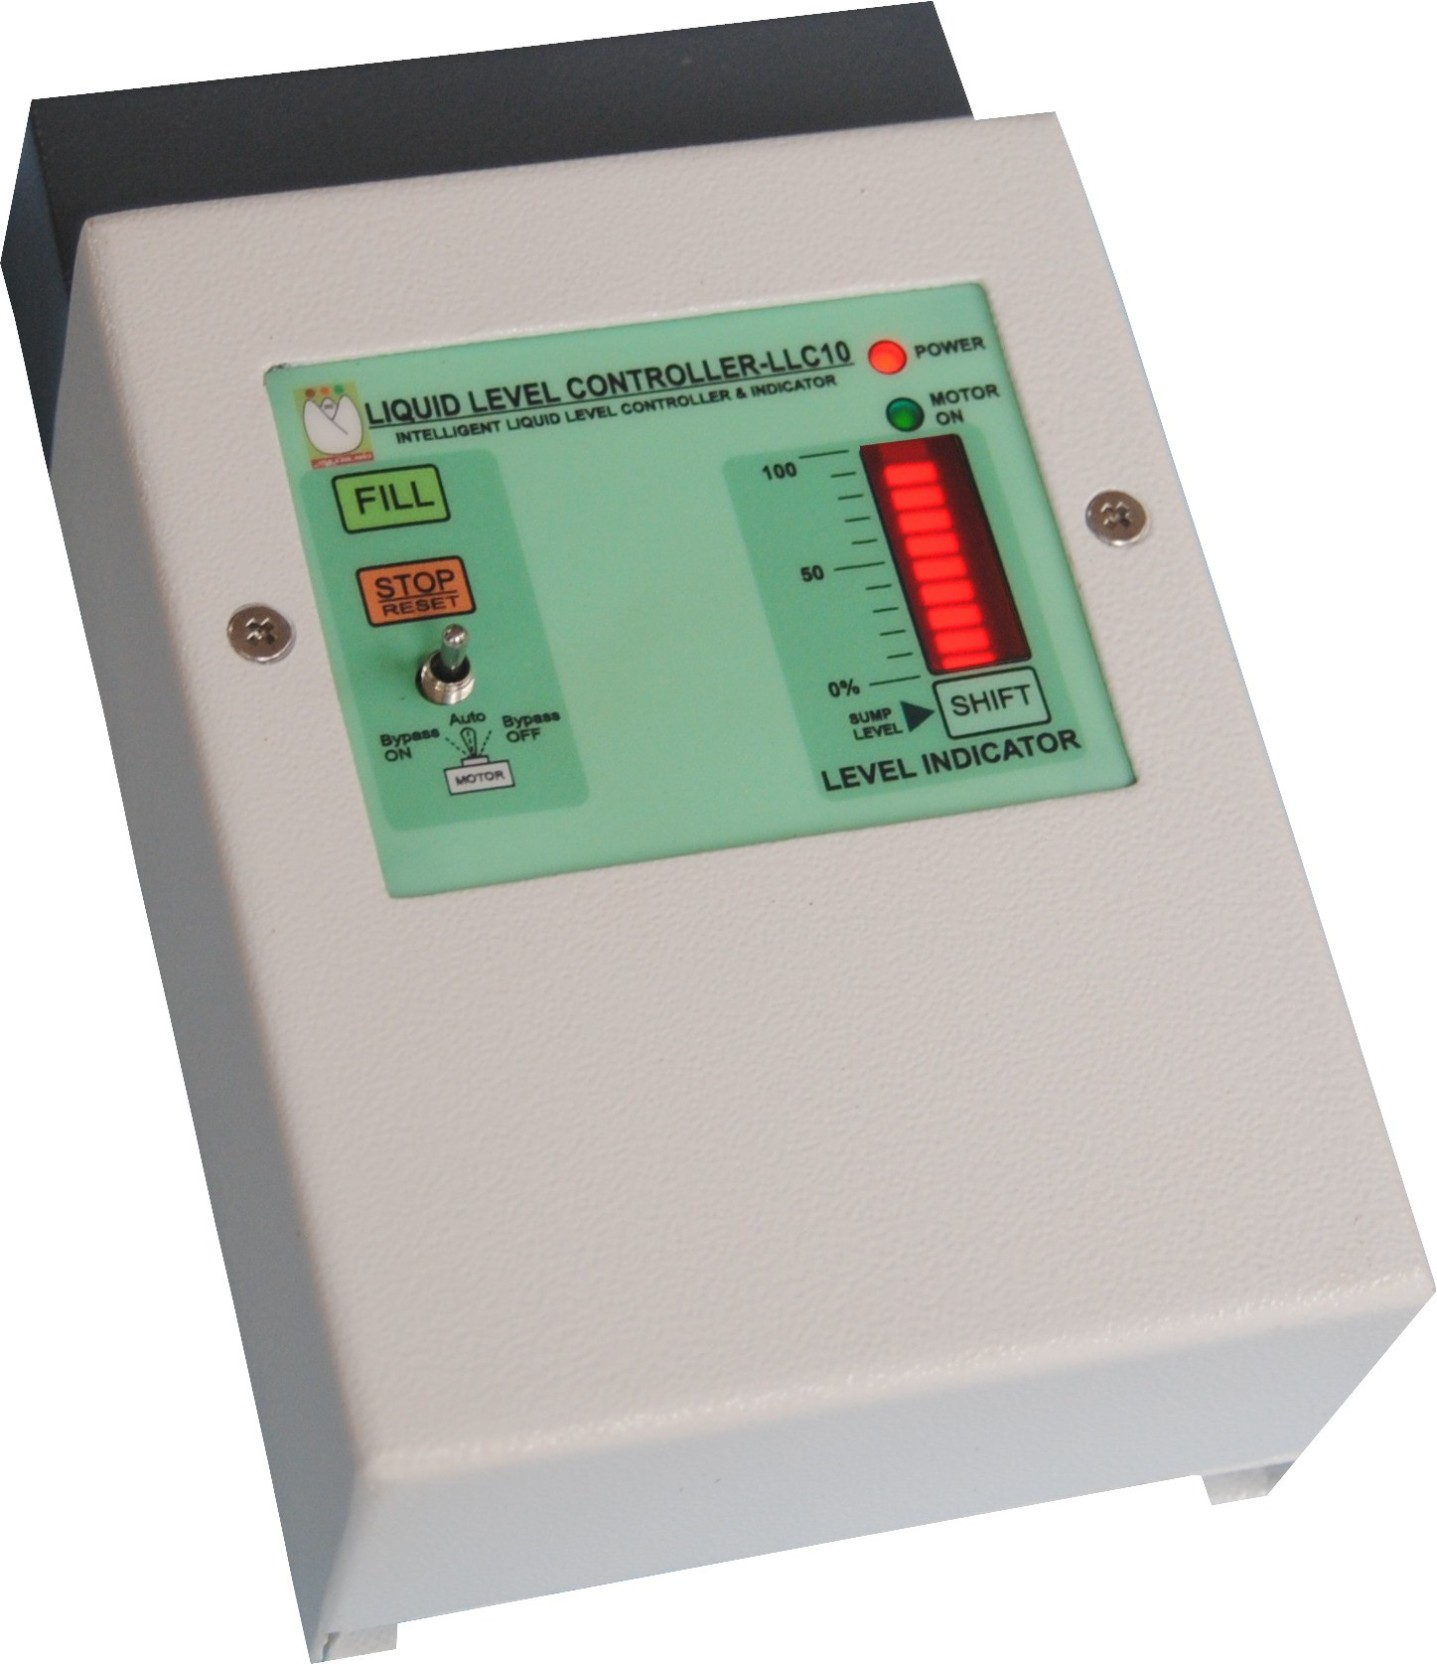 Aampal Automatic Water Level Controller And Indicator For Tank With Simple Circuit Sump Wired Sensor Security System Share